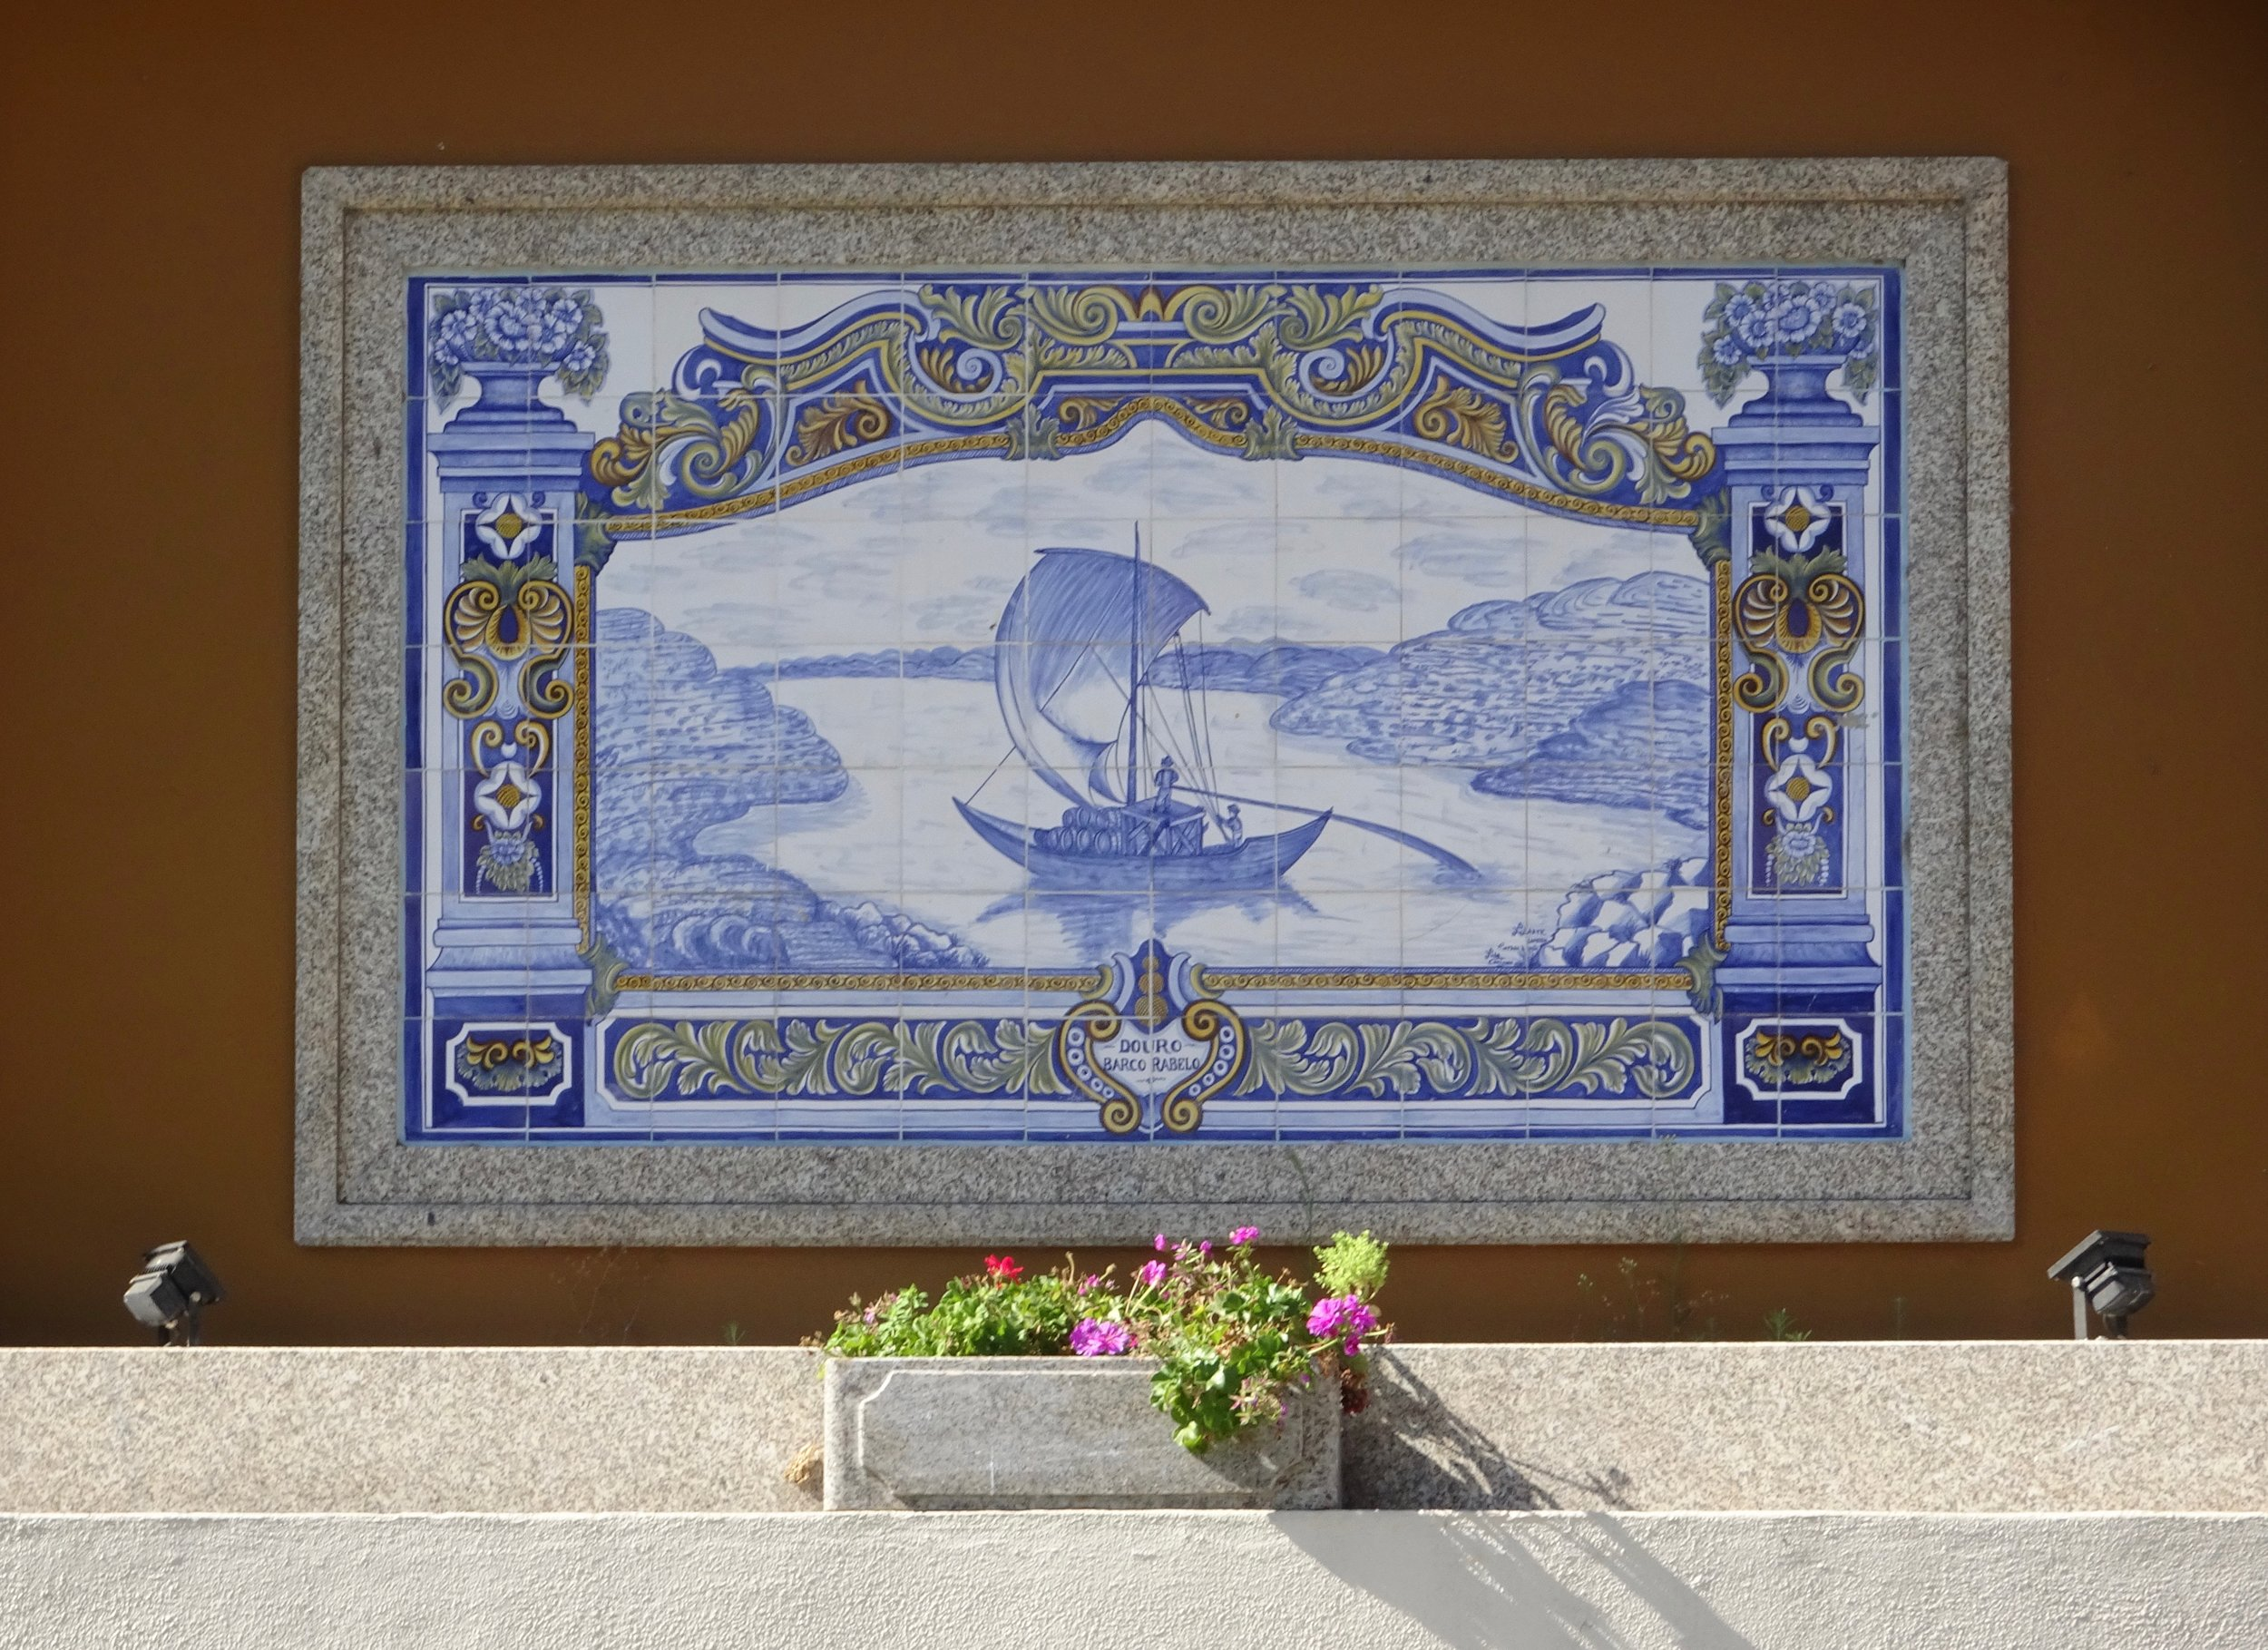 Azulejos tile depicting Port runners,  Douro River Valley, Portugal - M.Quigley